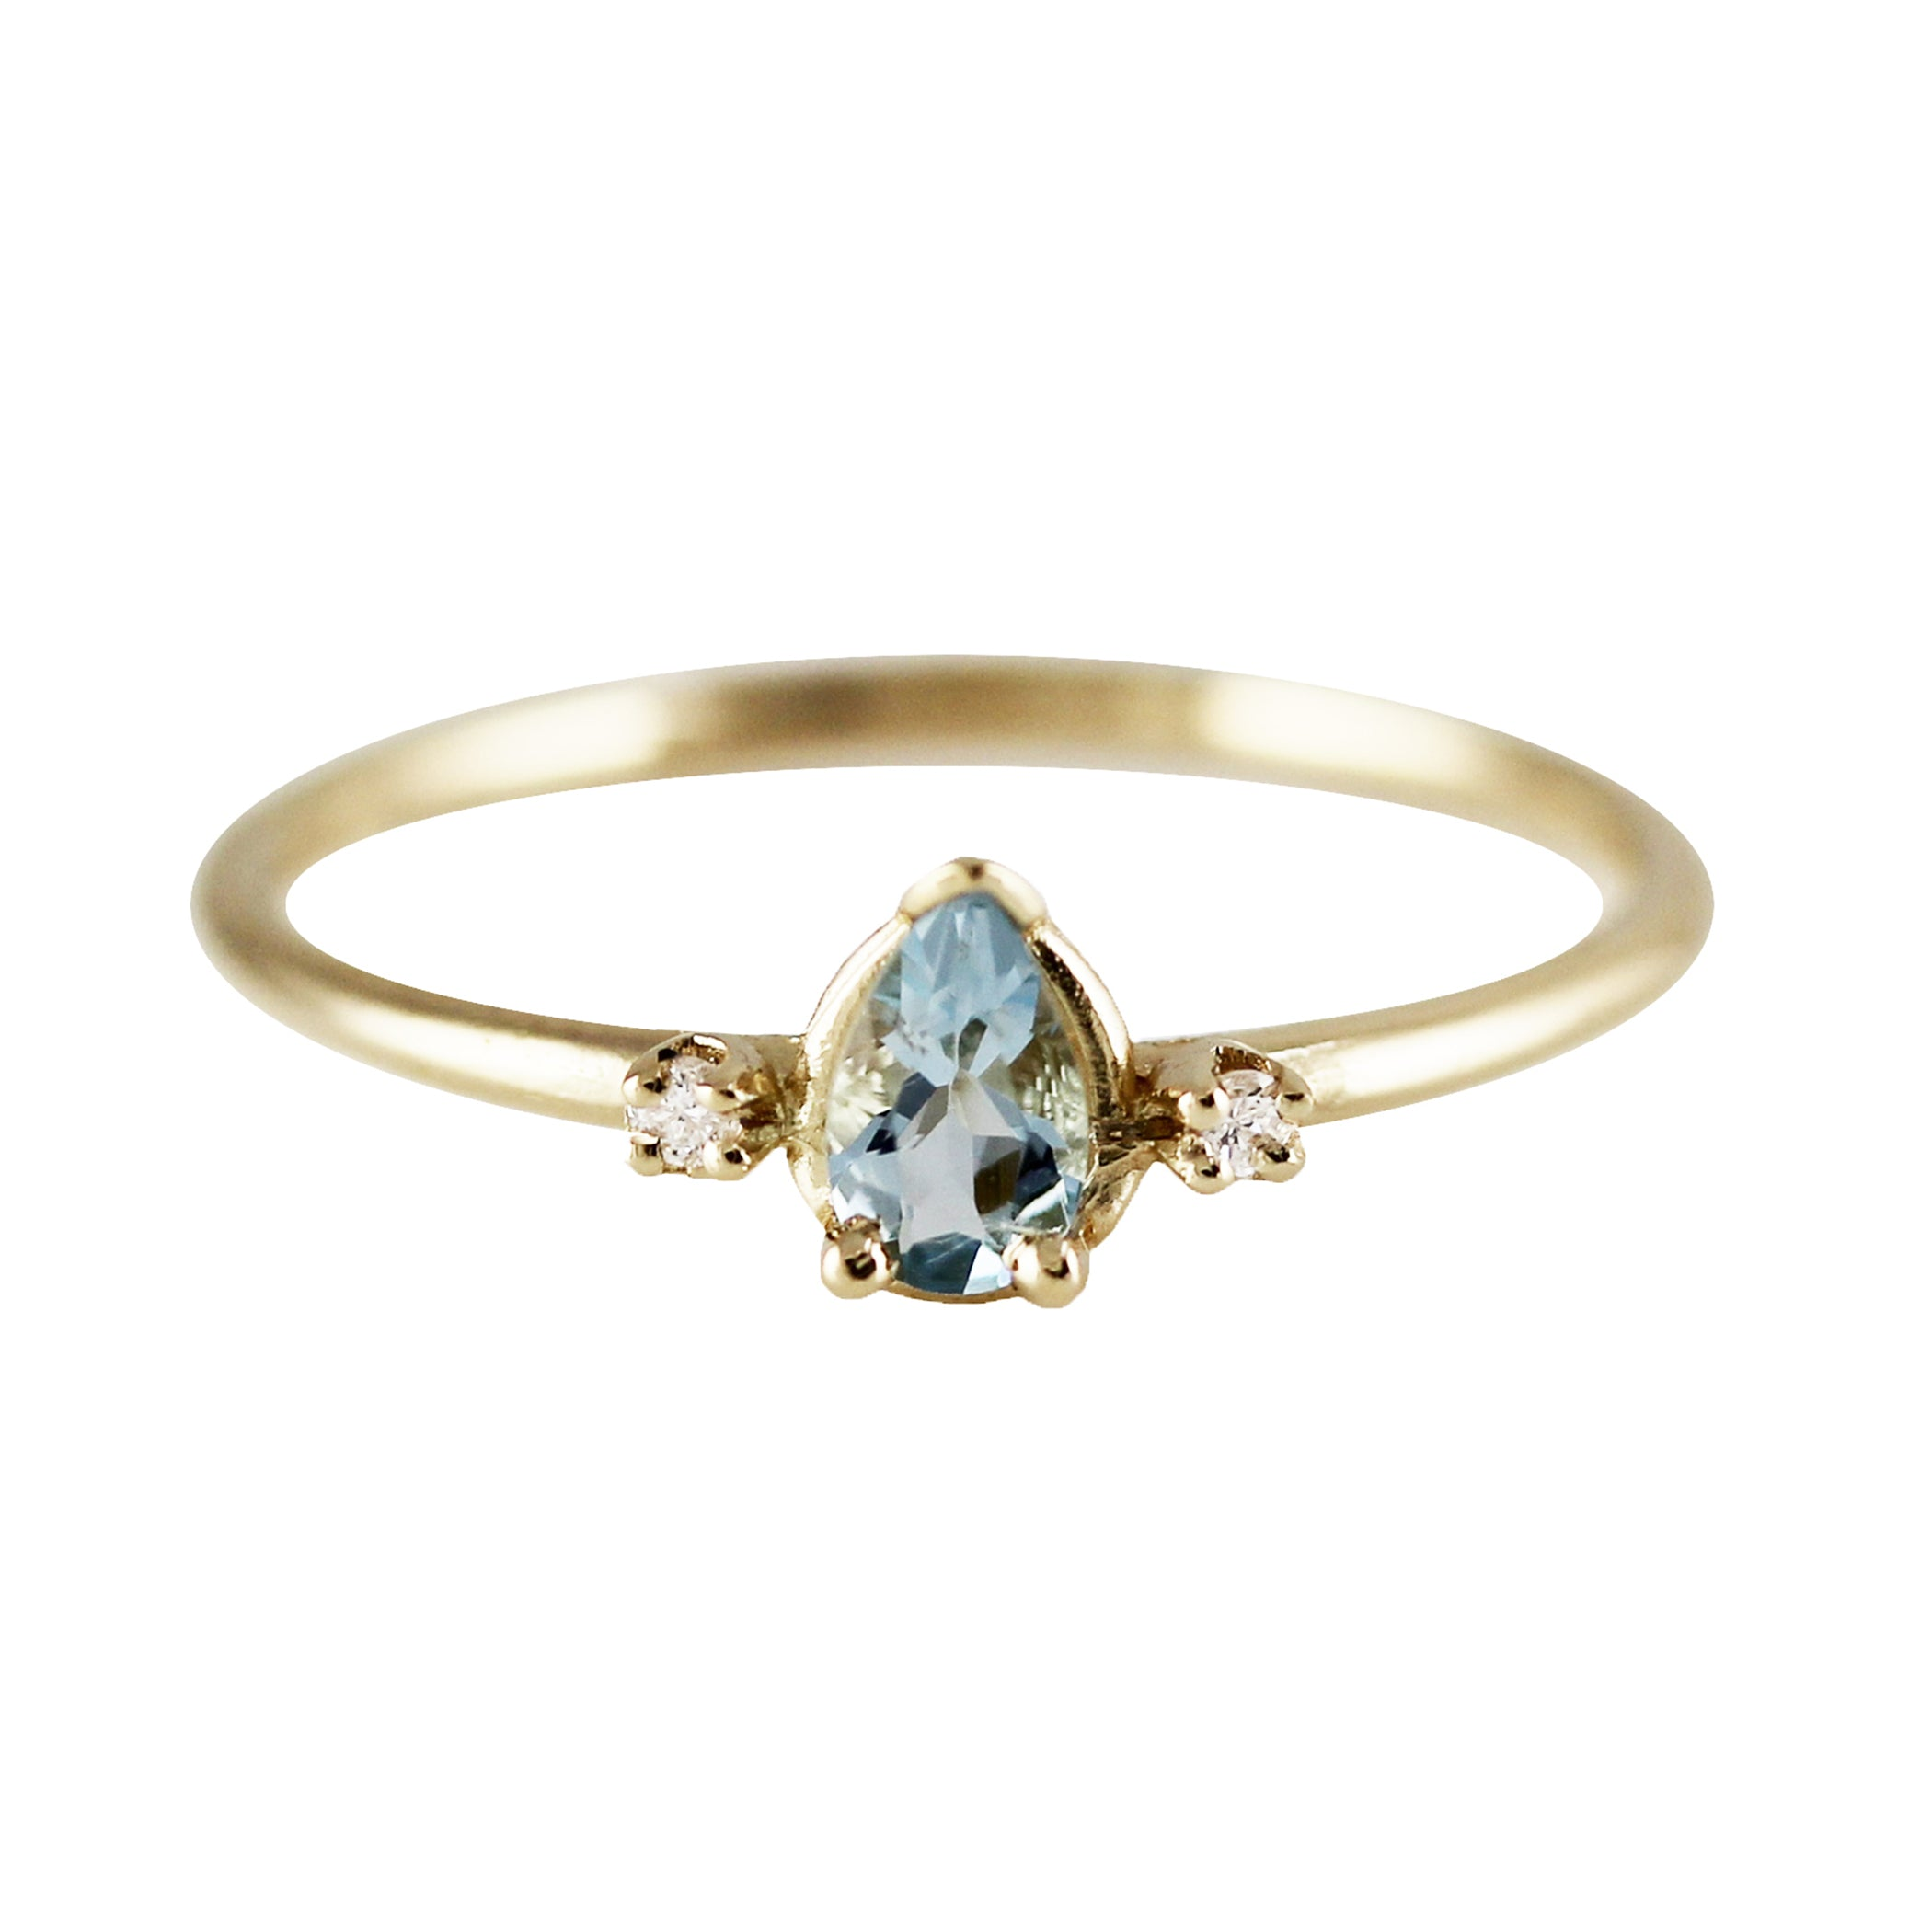 PRINCESS AQUAMARINE RING